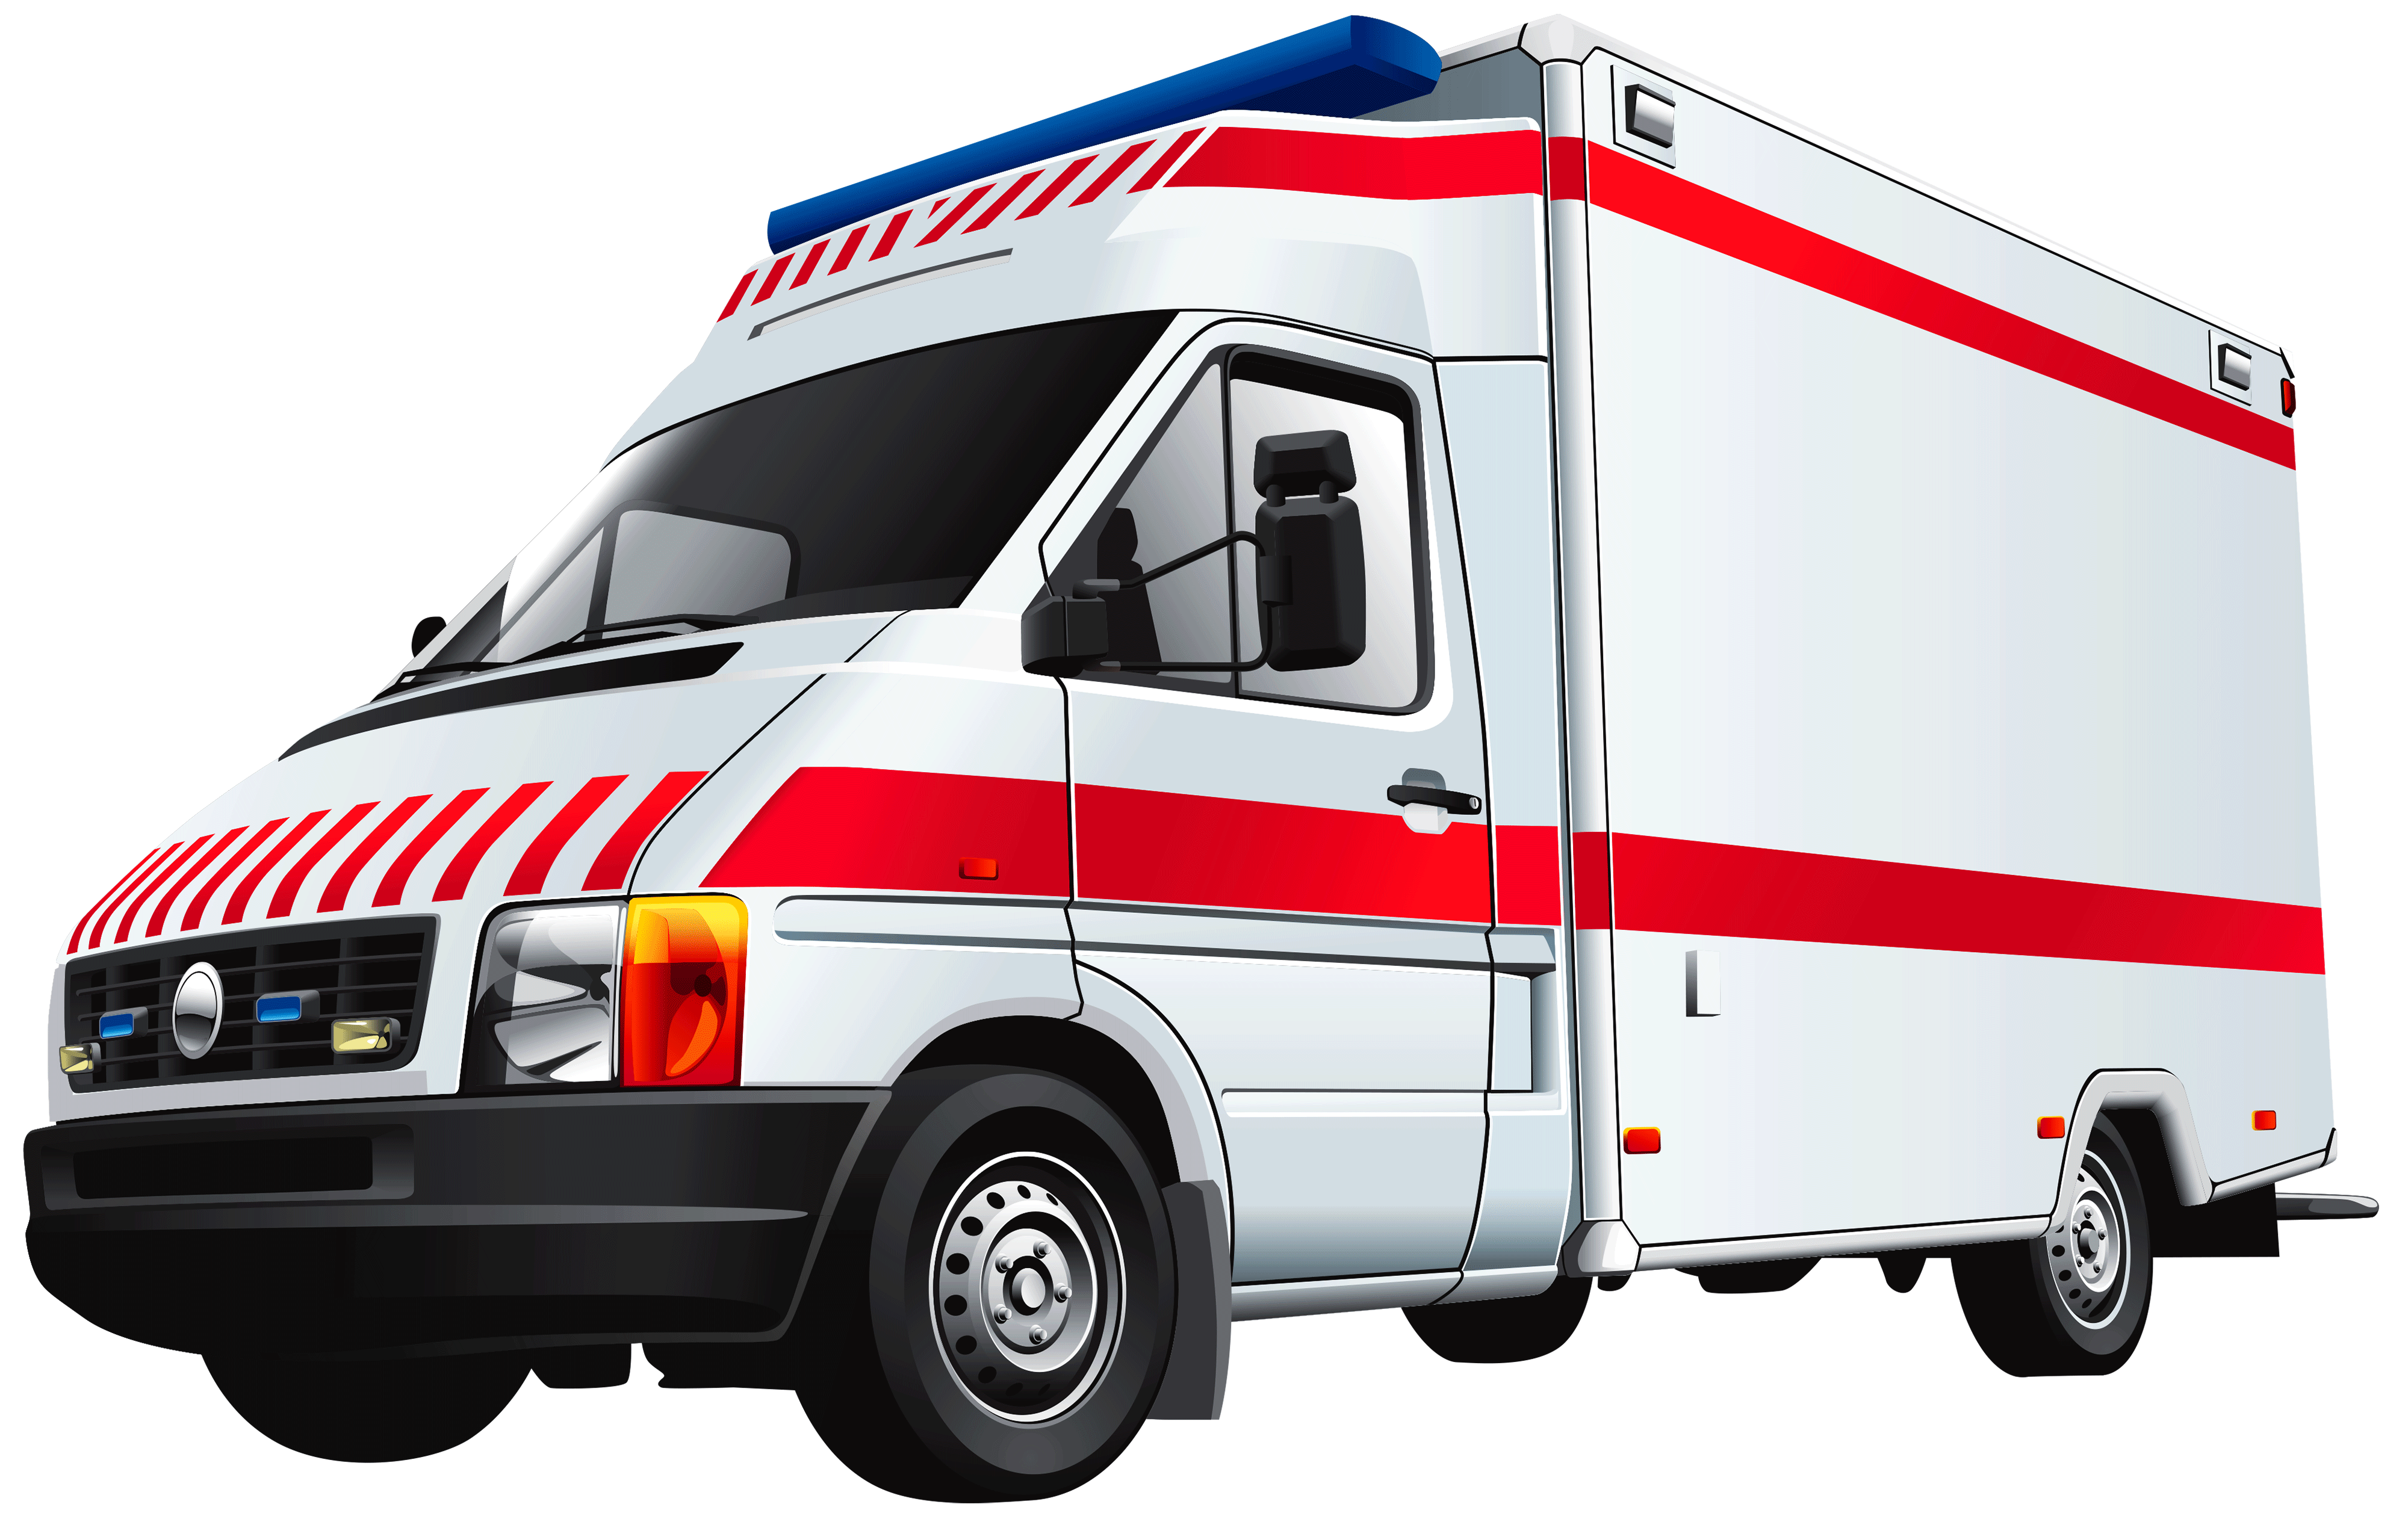 4000x2524 Ambulance Clipart